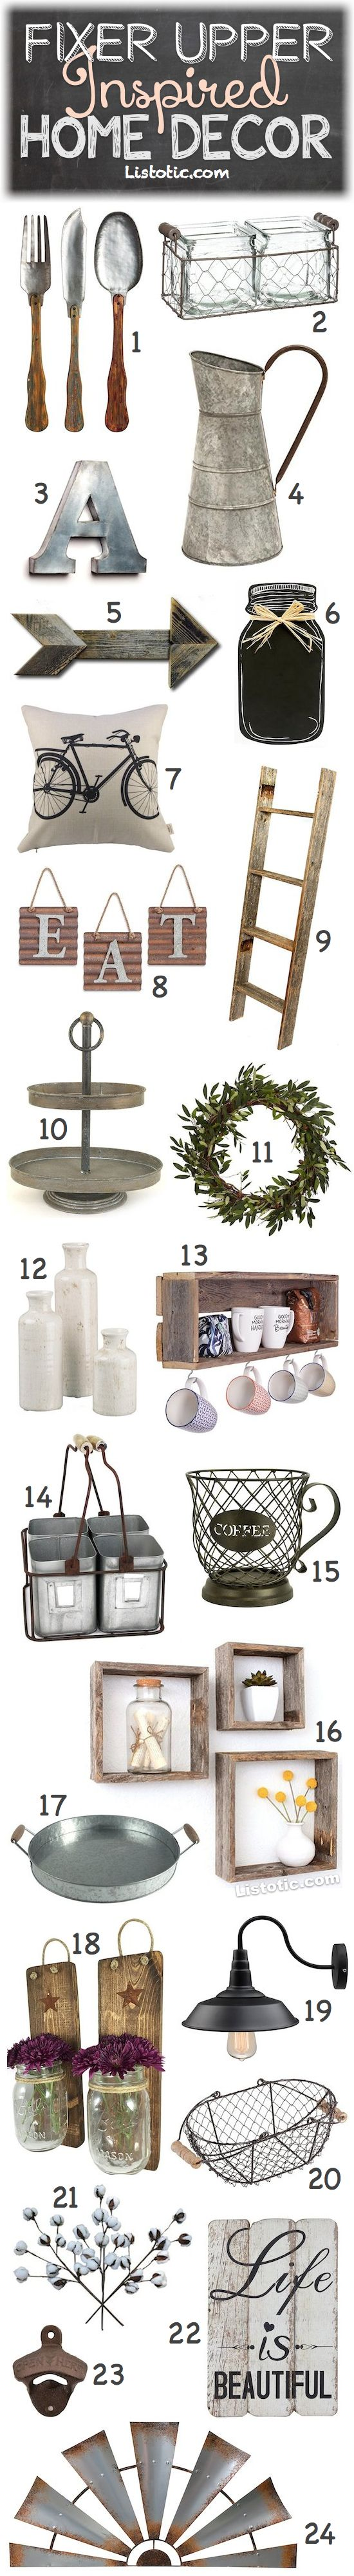 Fixer Upper Home Decor Ideas for your kitchen, bathrooms, bedrooms, or any room of the house! I love these farmhouse decorations.